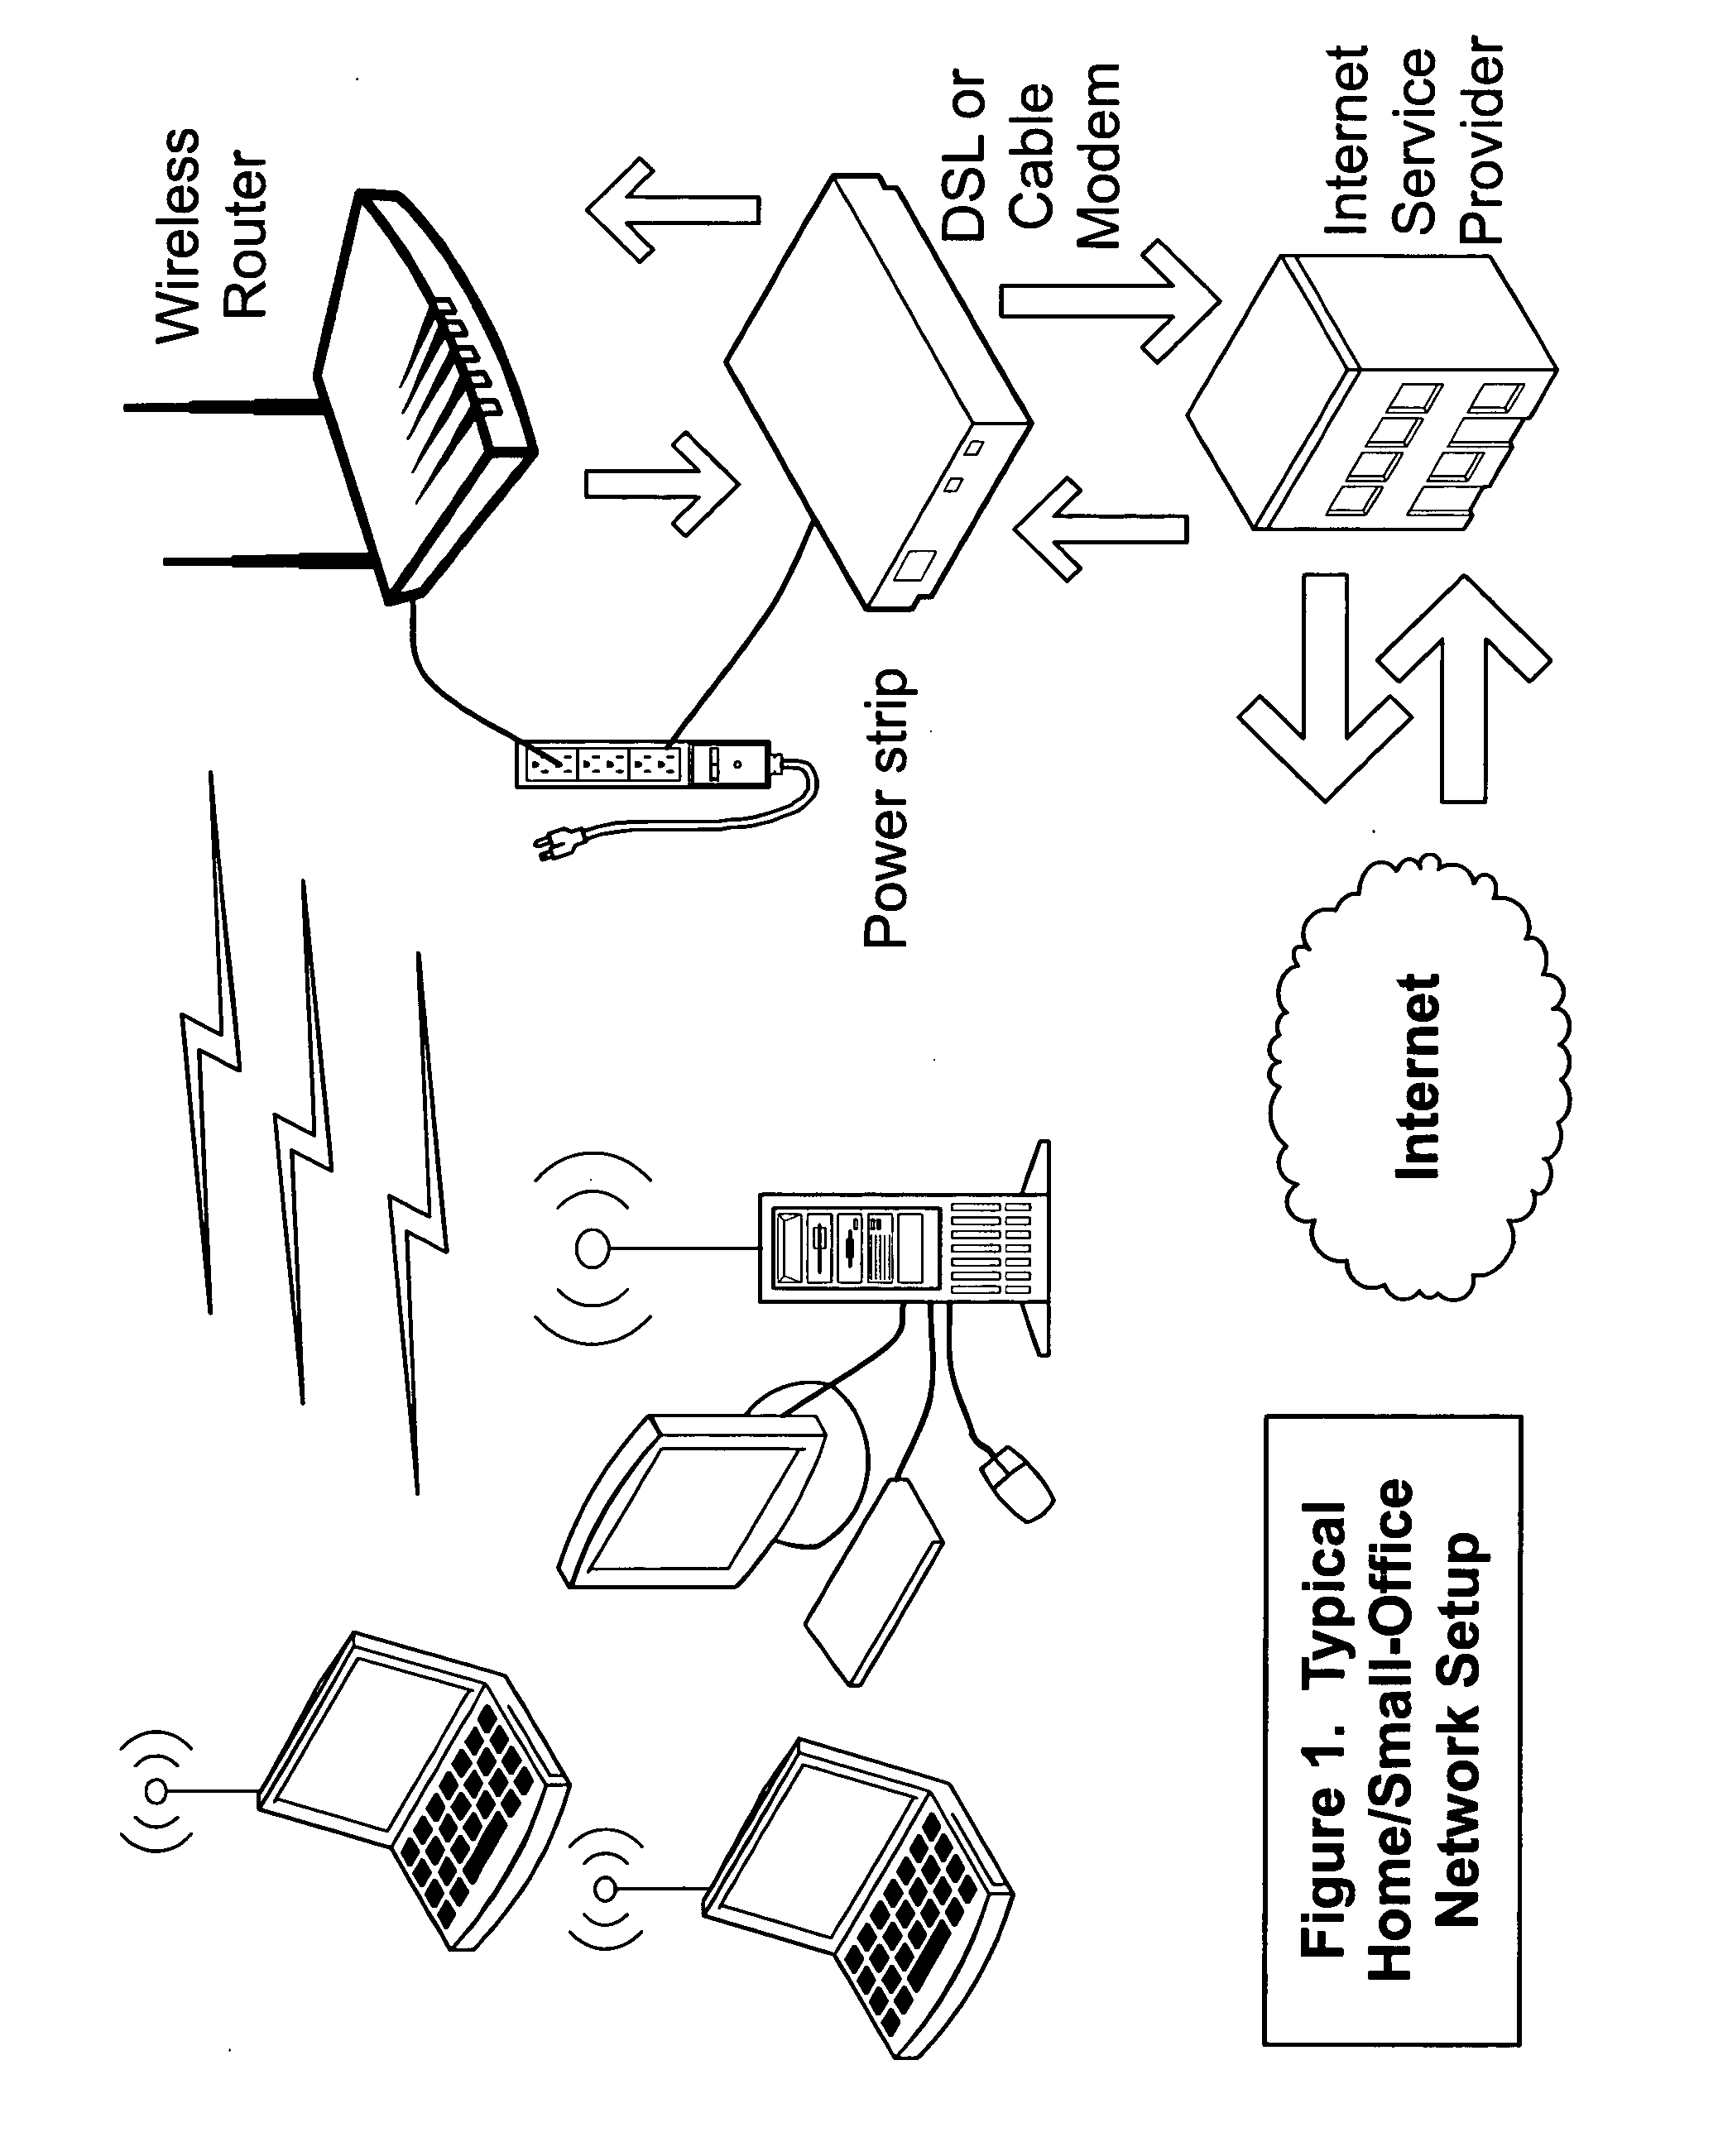 Patent Us20090013210 Systems Devices Agents And Methods For Small Office Network Setup Diagram Drawing